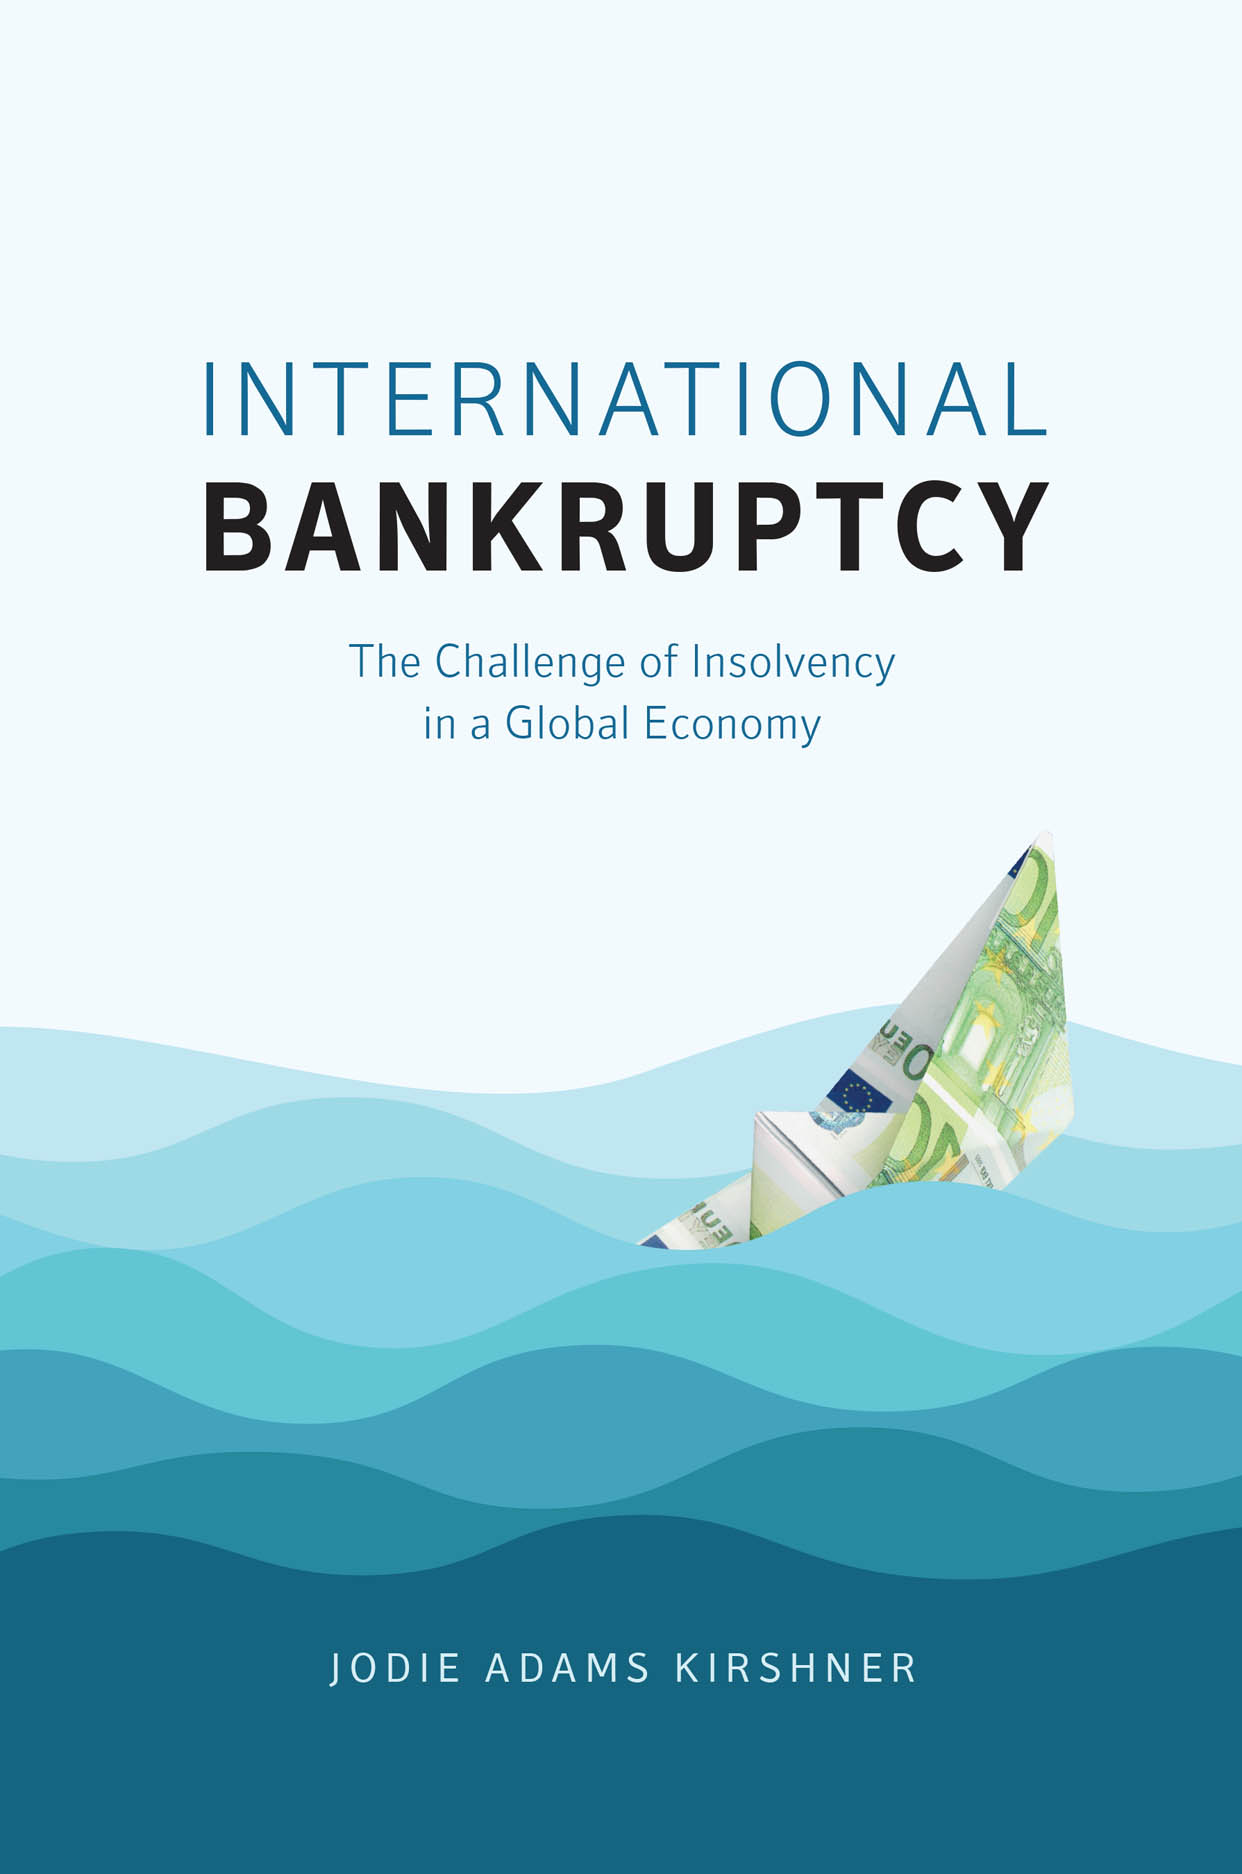 International Bankruptcy: The Challenge of Insolvency in a Global Economy